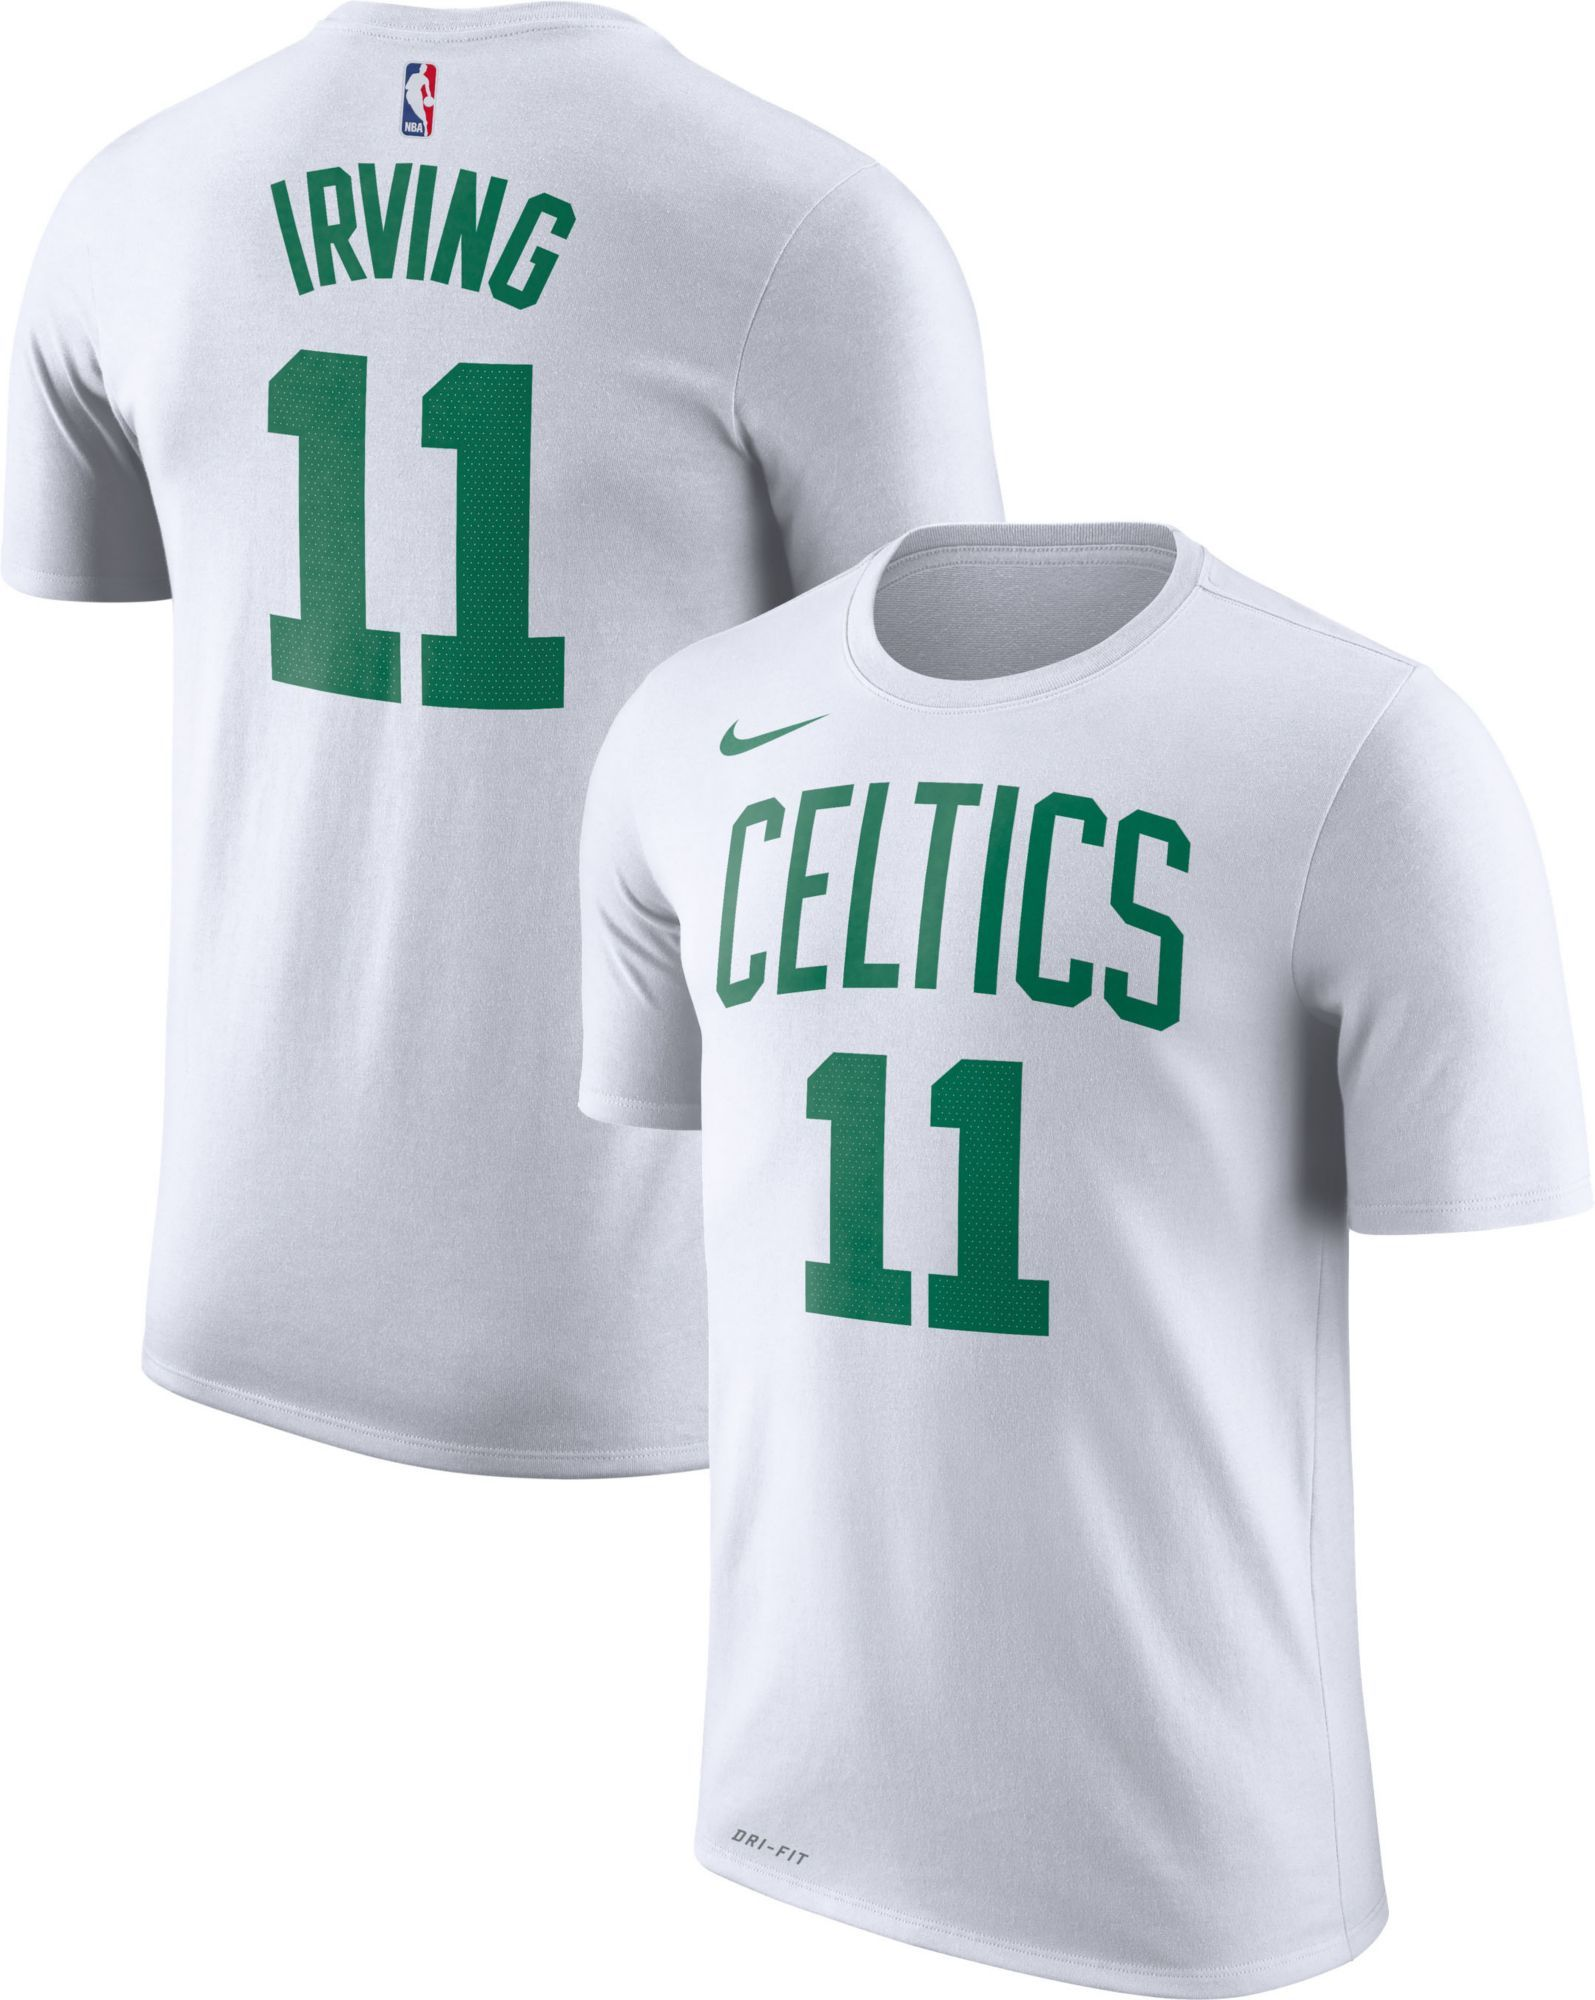 brand new 04d4b ec9d4 Nike Youth Boston Celtics Kyrie Irving #11 Dri-FIT White T ...